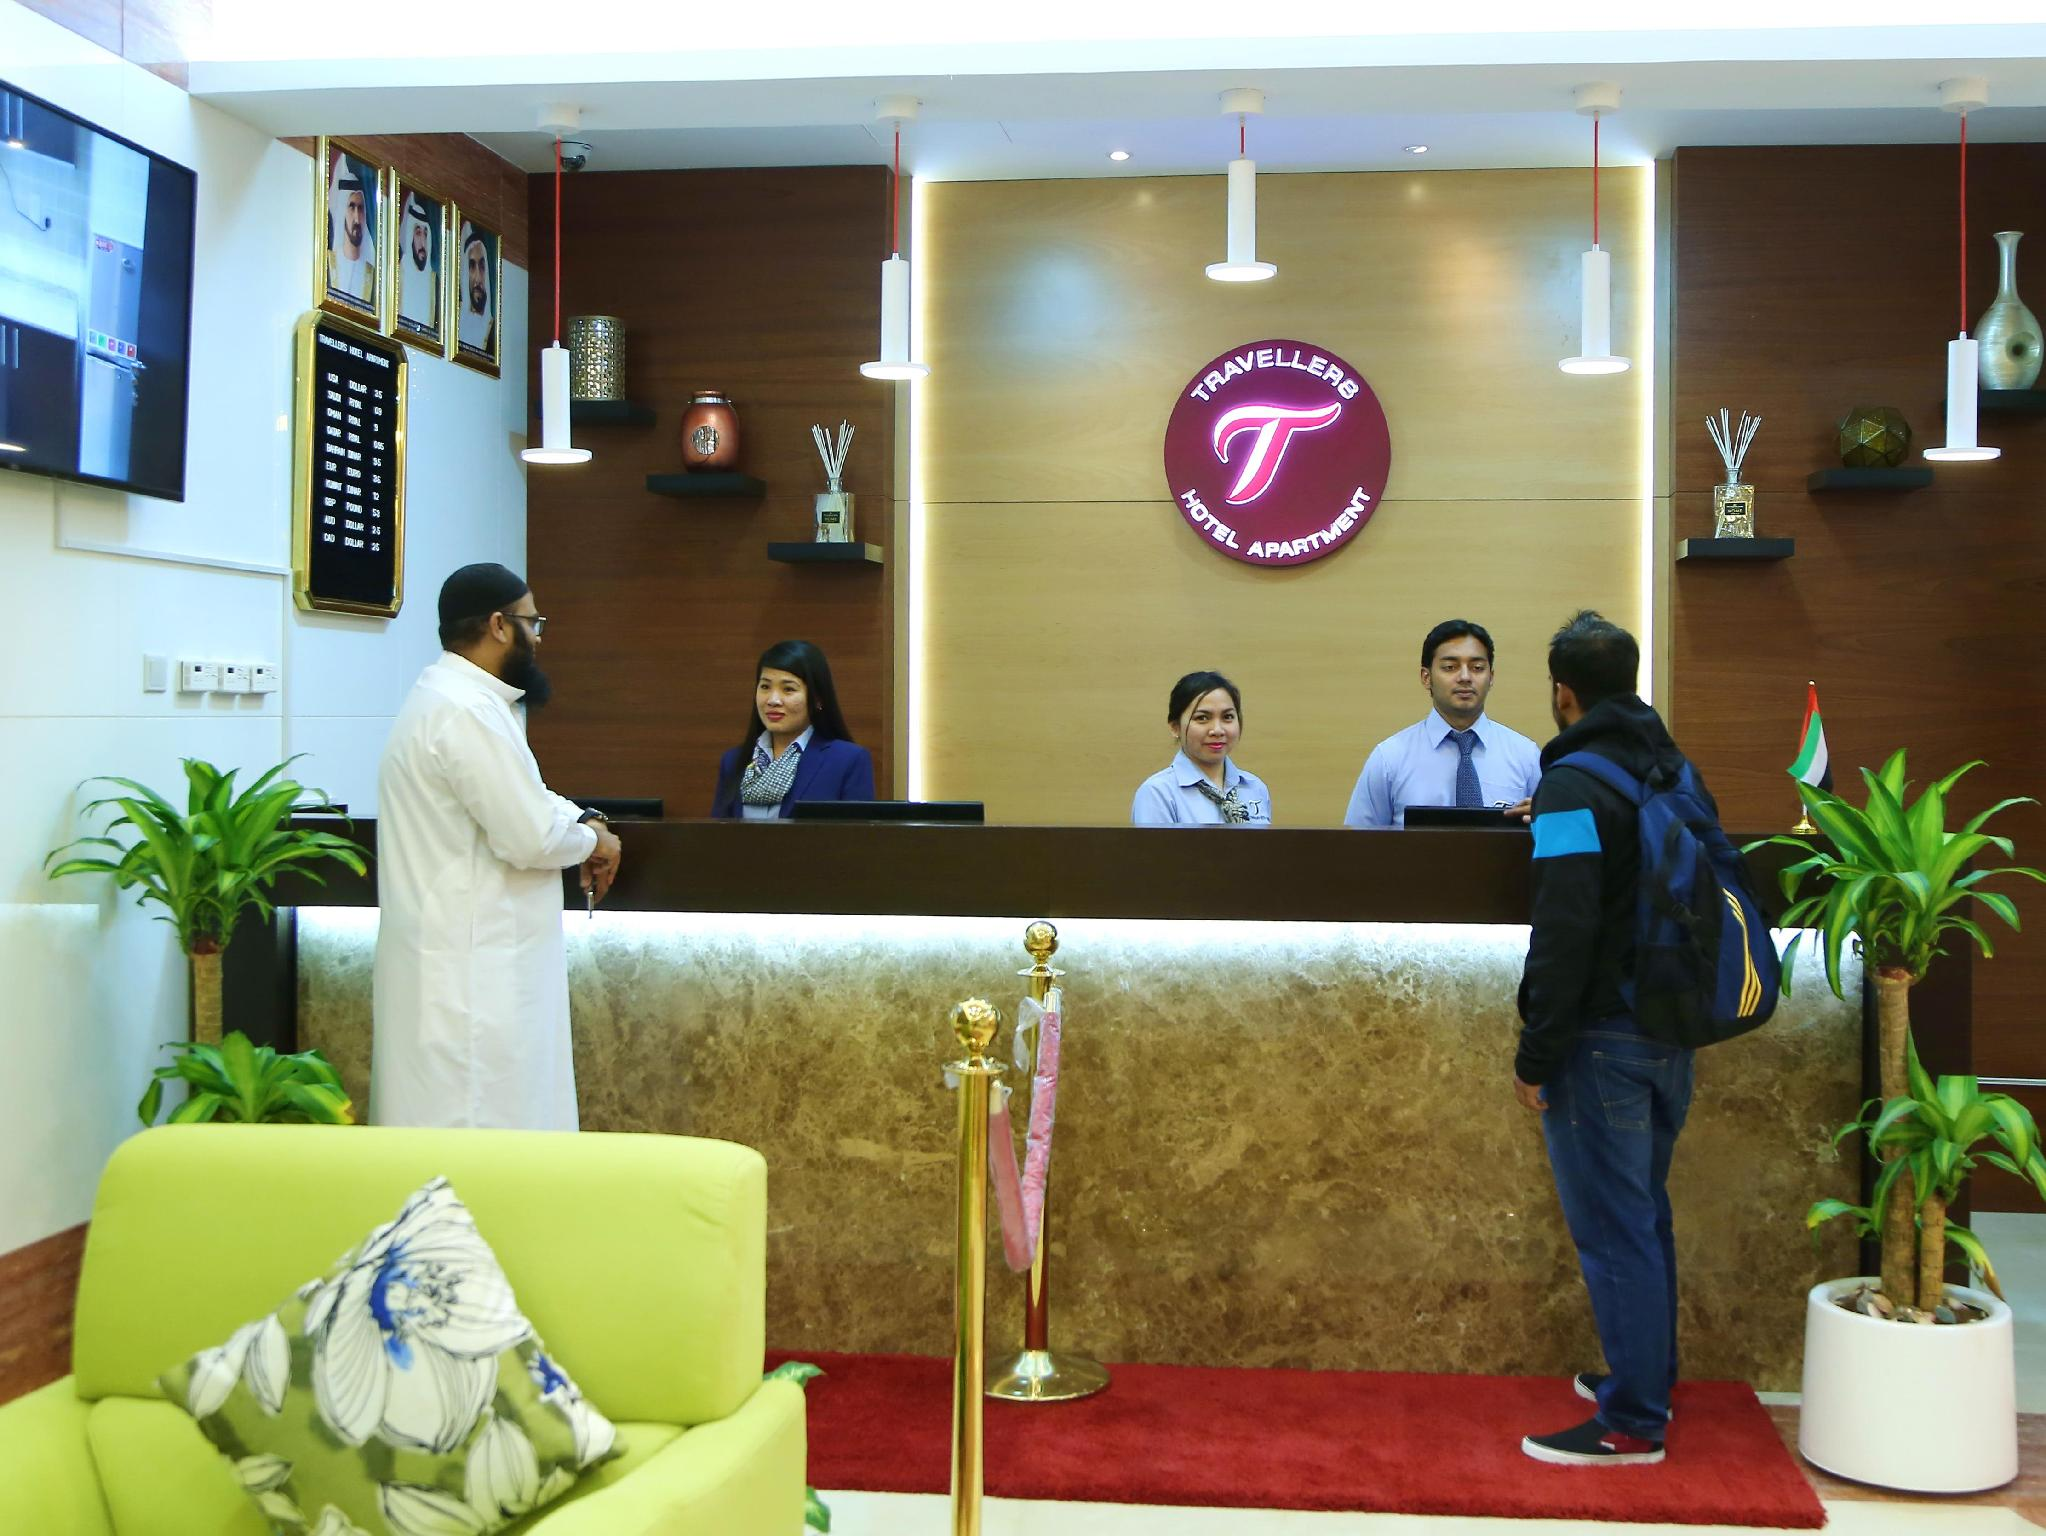 Travellers Hotel Apartment - Hotels and Accommodation in United Arab Emirates, Middle East